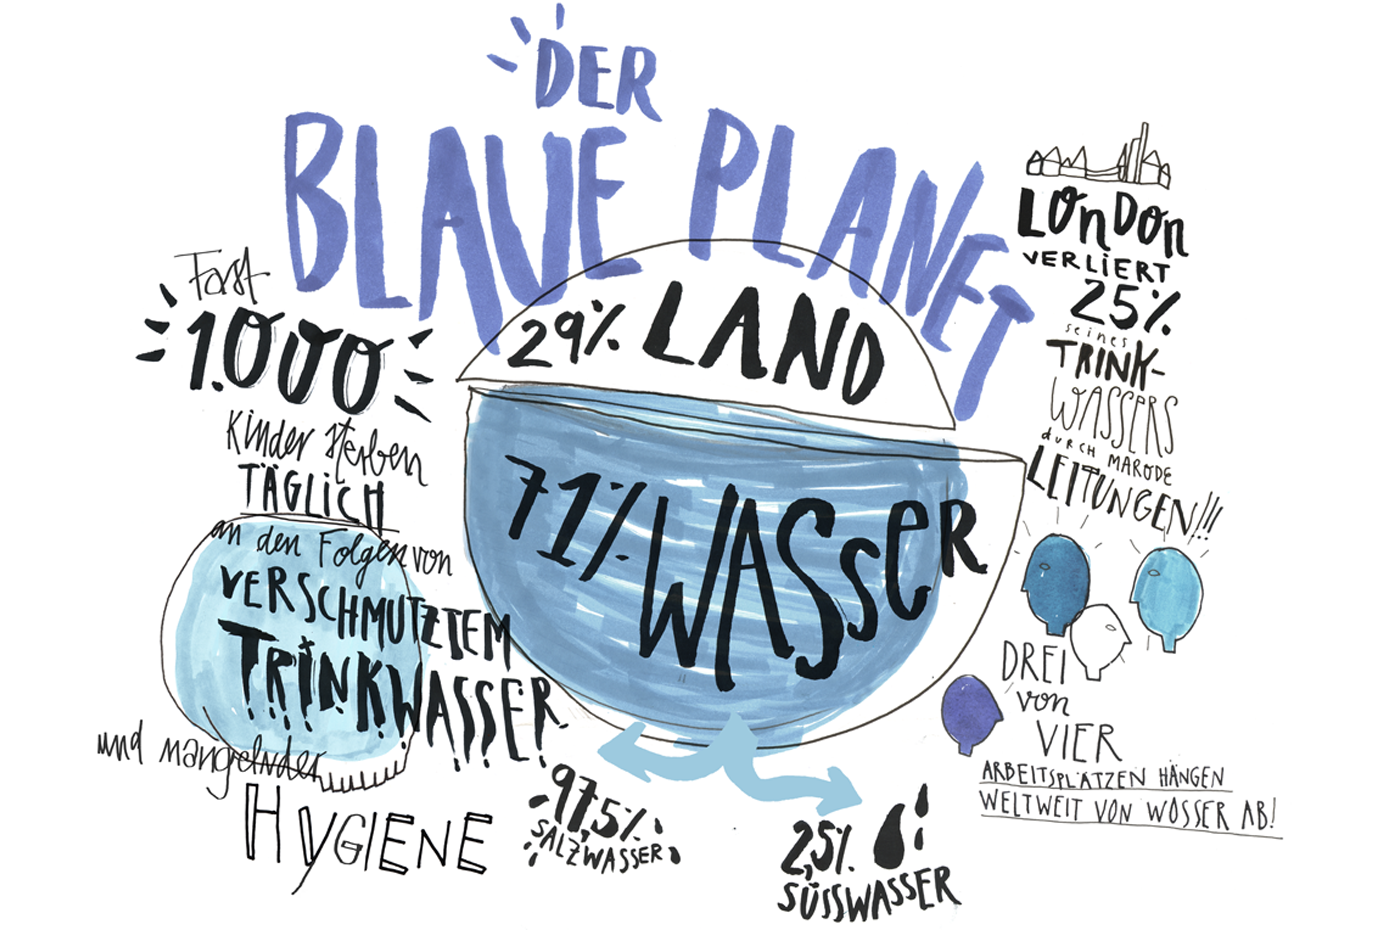 Der blaue Planet (Illustration)